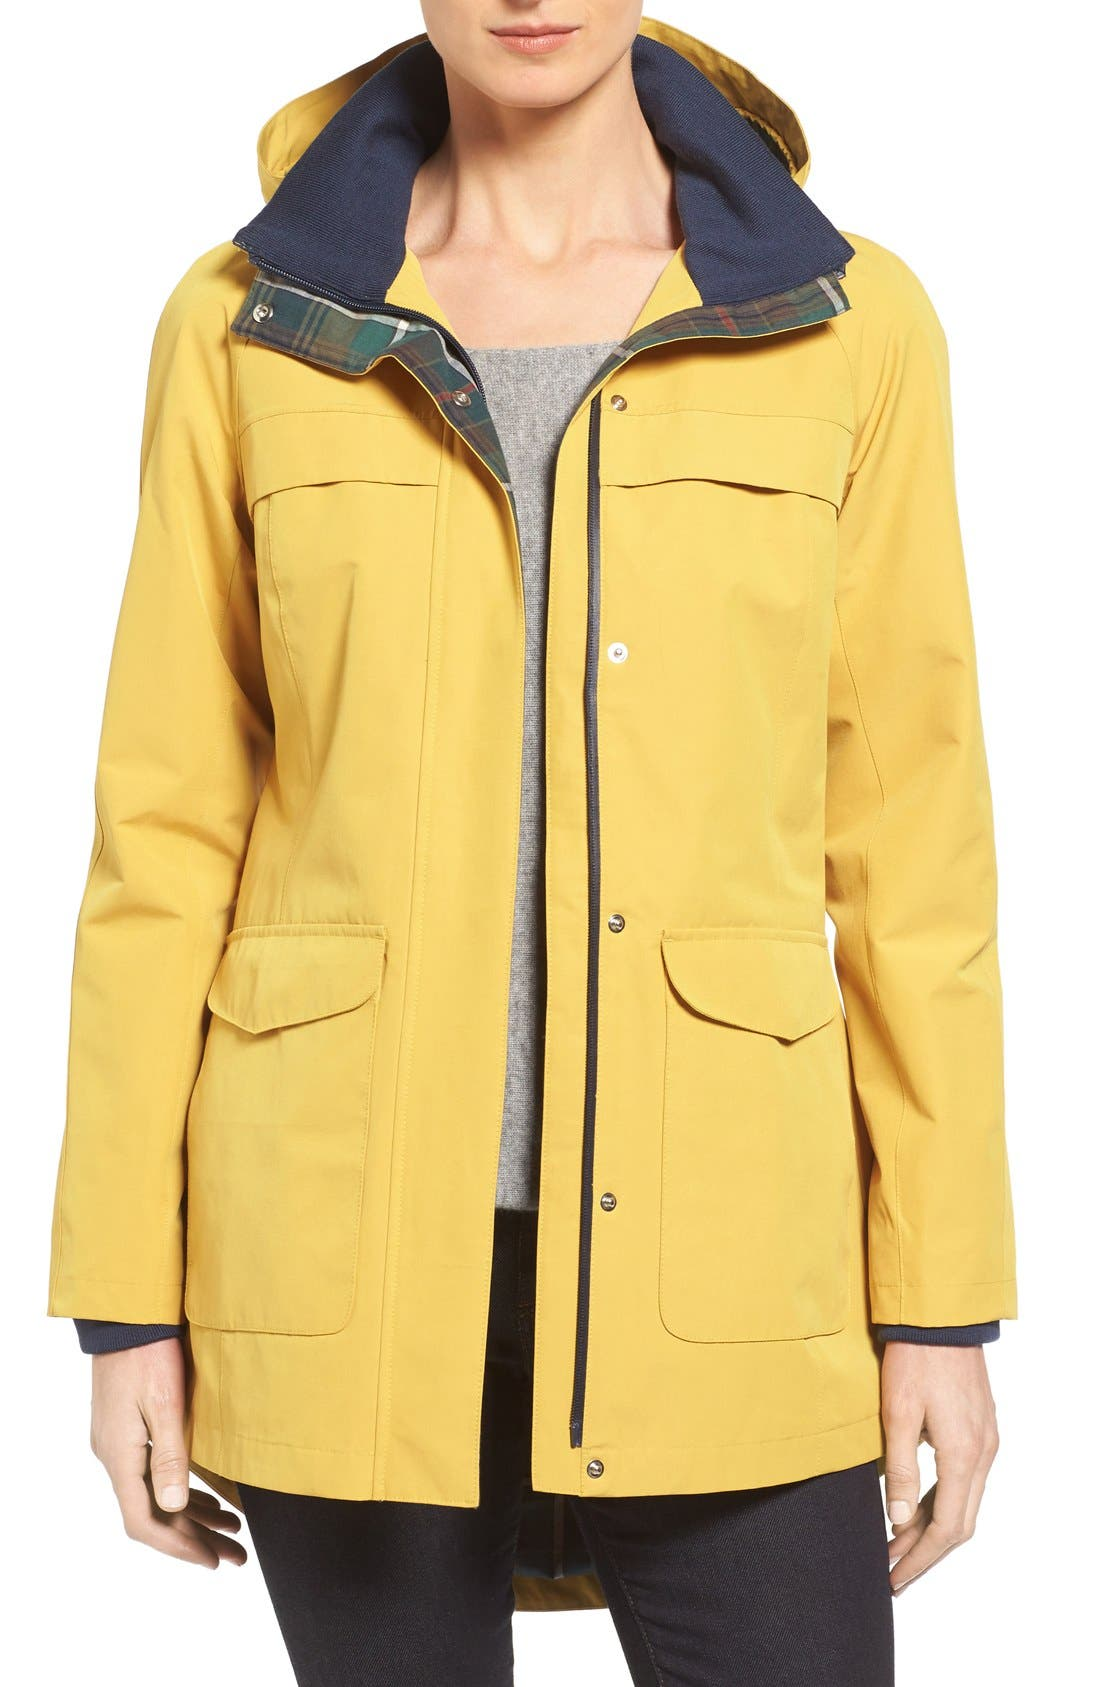 Main Image - Pendleton Hooded Raincoat